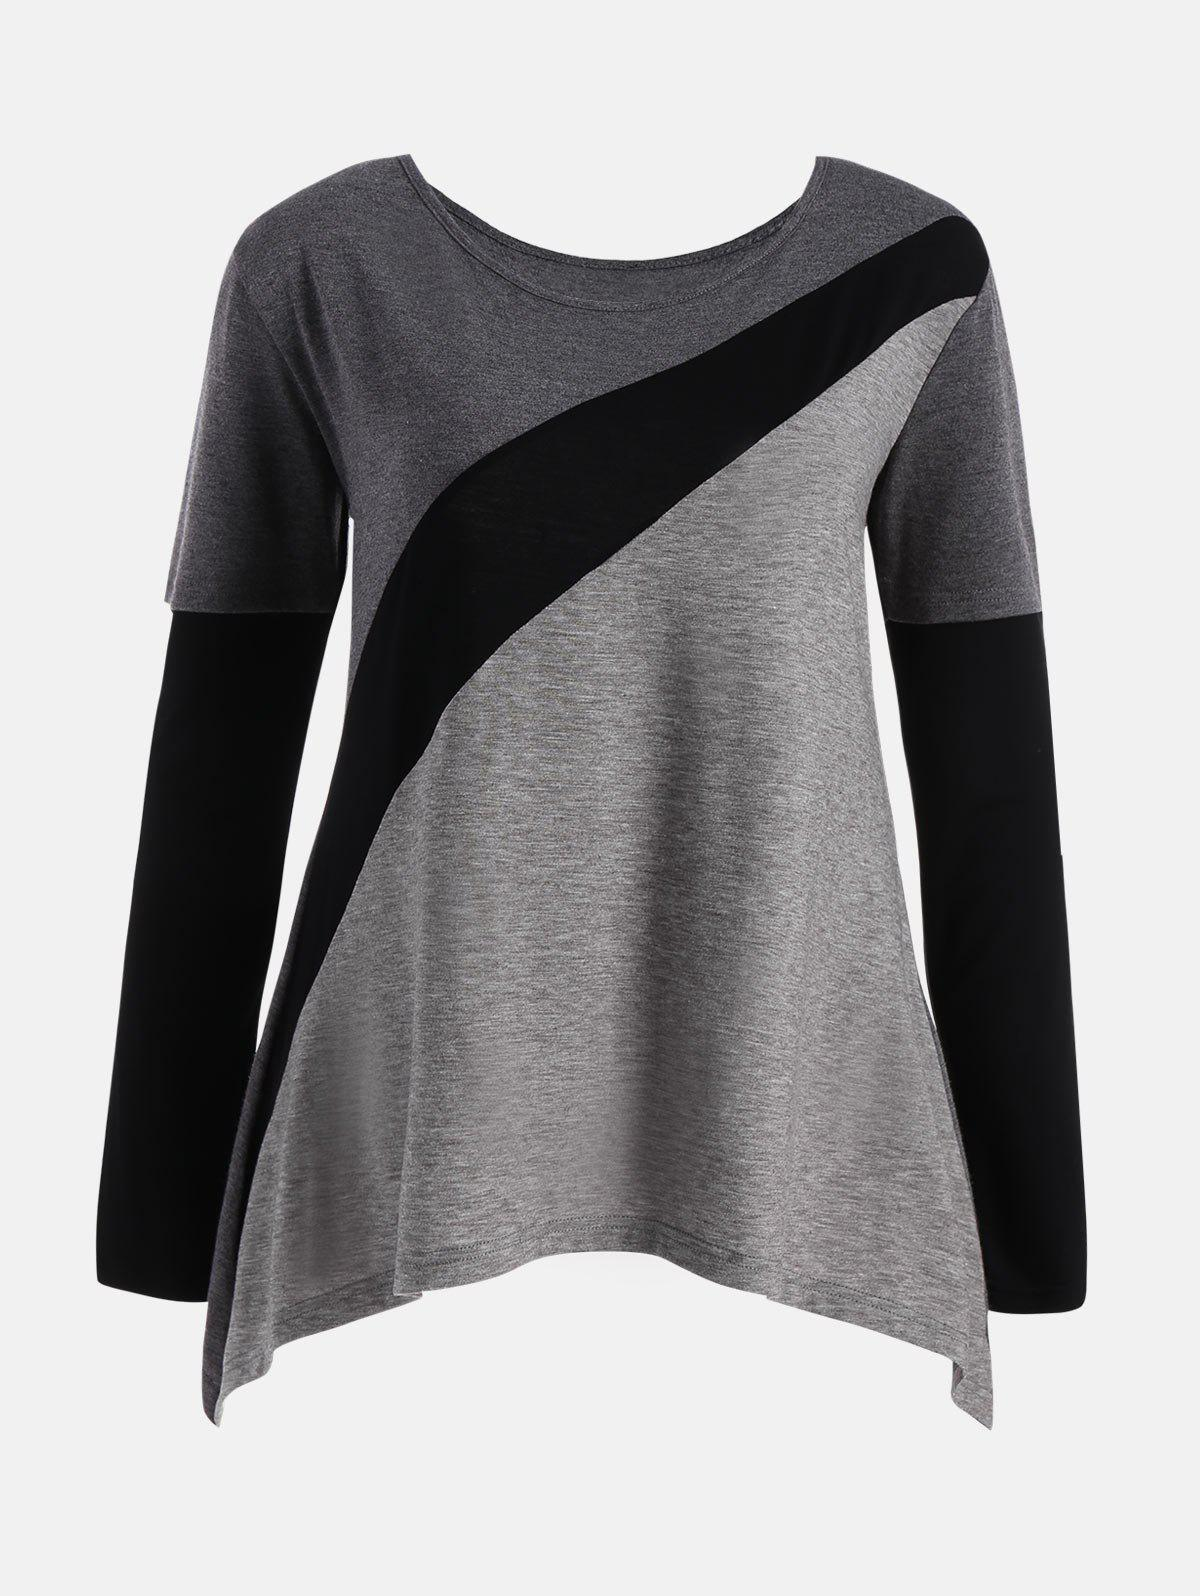 Color Block Plus Size Long Sleeve T-shirtWOMEN<br><br>Size: 3XL; Color: COLORMIX; Material: Polyester,Spandex; Shirt Length: Regular; Sleeve Length: Full; Collar: Scoop Neck; Style: Casual; Season: Fall,Spring; Pattern Type: Others; Elasticity: Elastic; Weight: 0.3000kg; Package Contents: 1 x T-shirt;